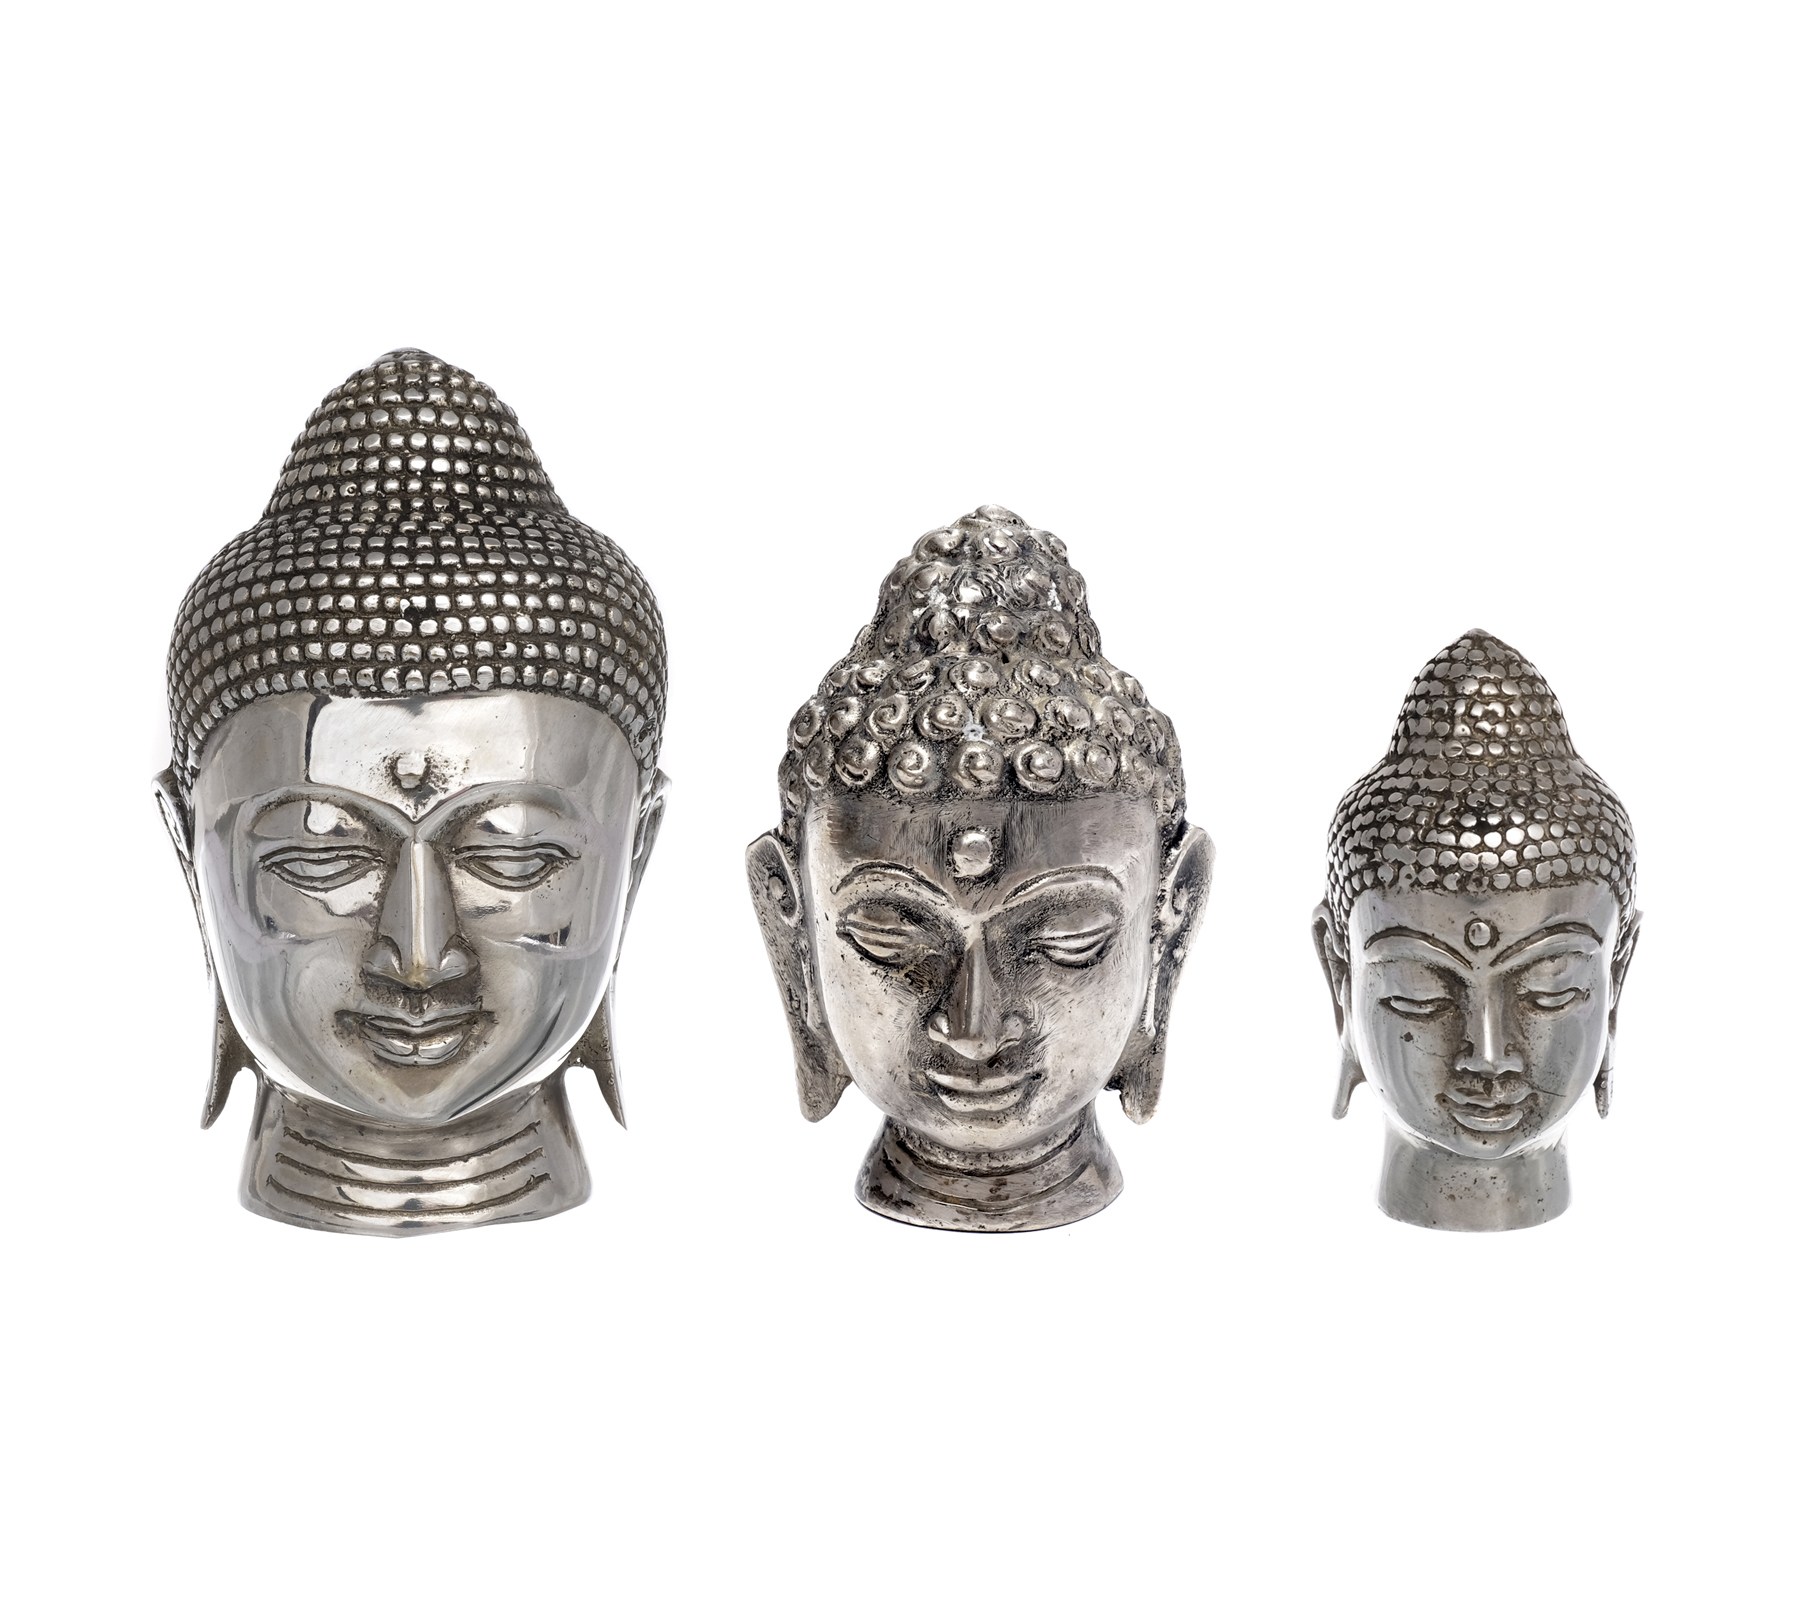 thai buddha kopf figur feng shui skulptur silber vintage. Black Bedroom Furniture Sets. Home Design Ideas